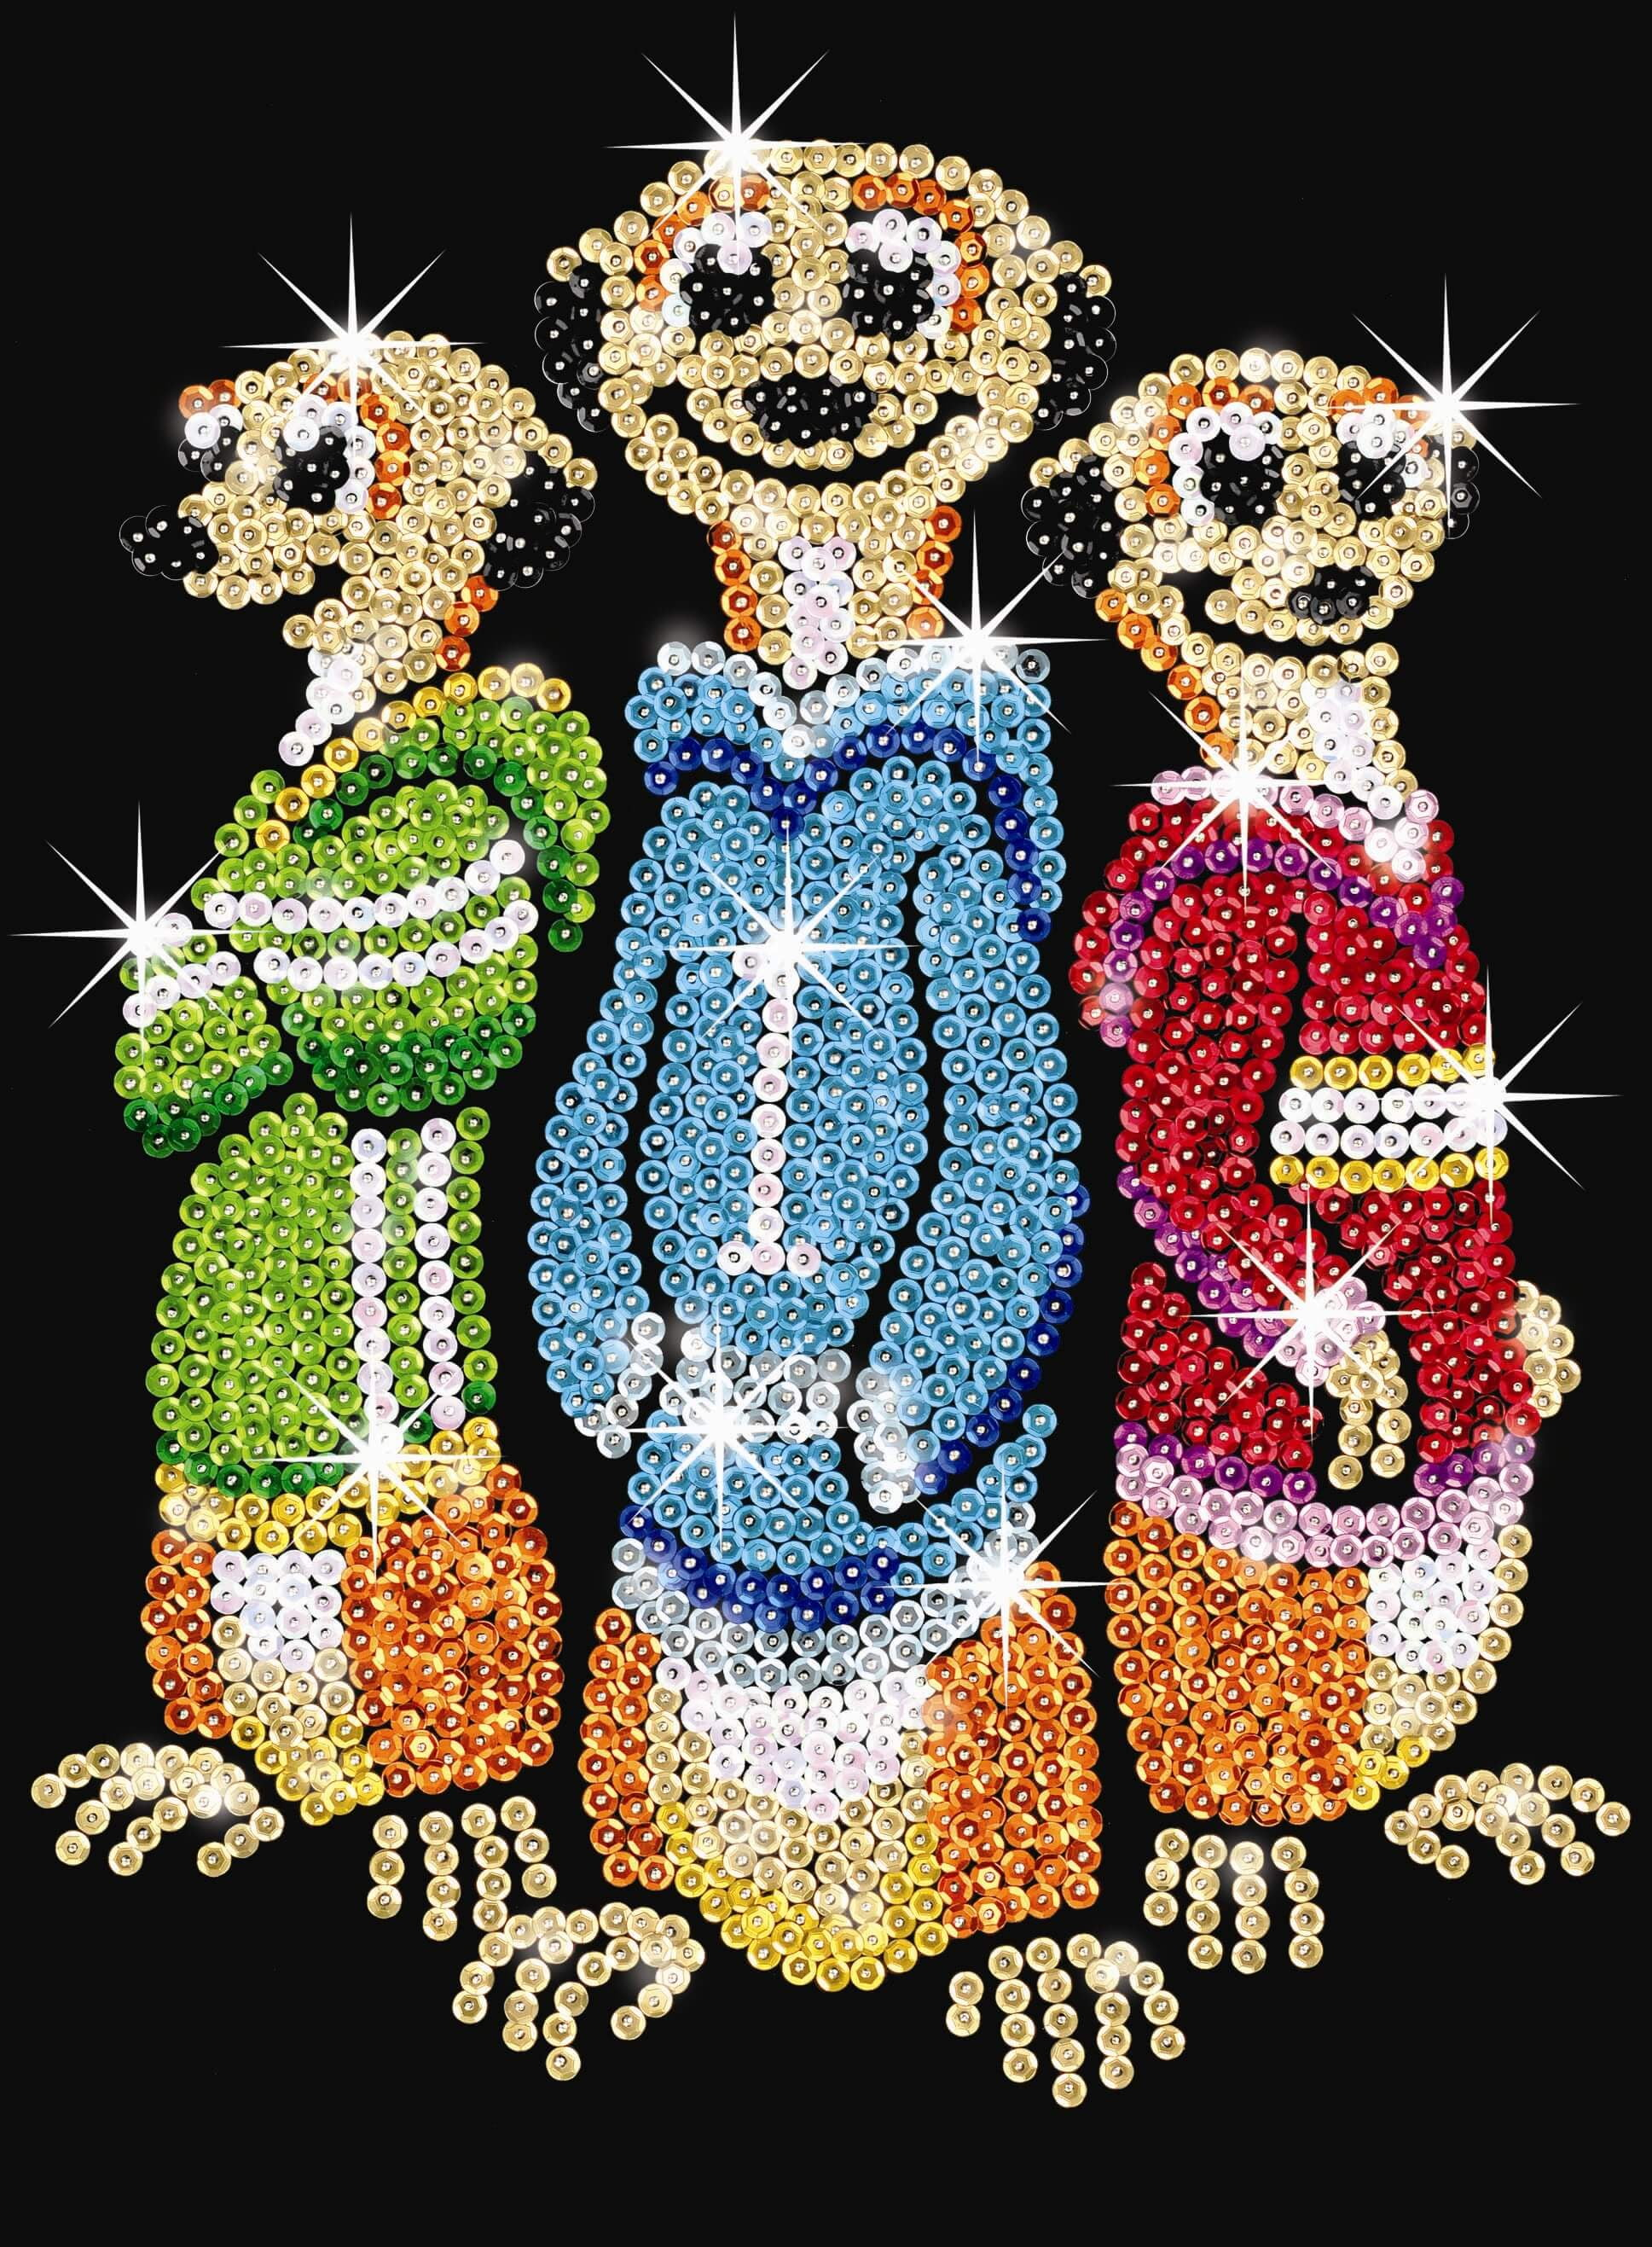 Sequin Art Red Meerkats SJ1008  Hobbies